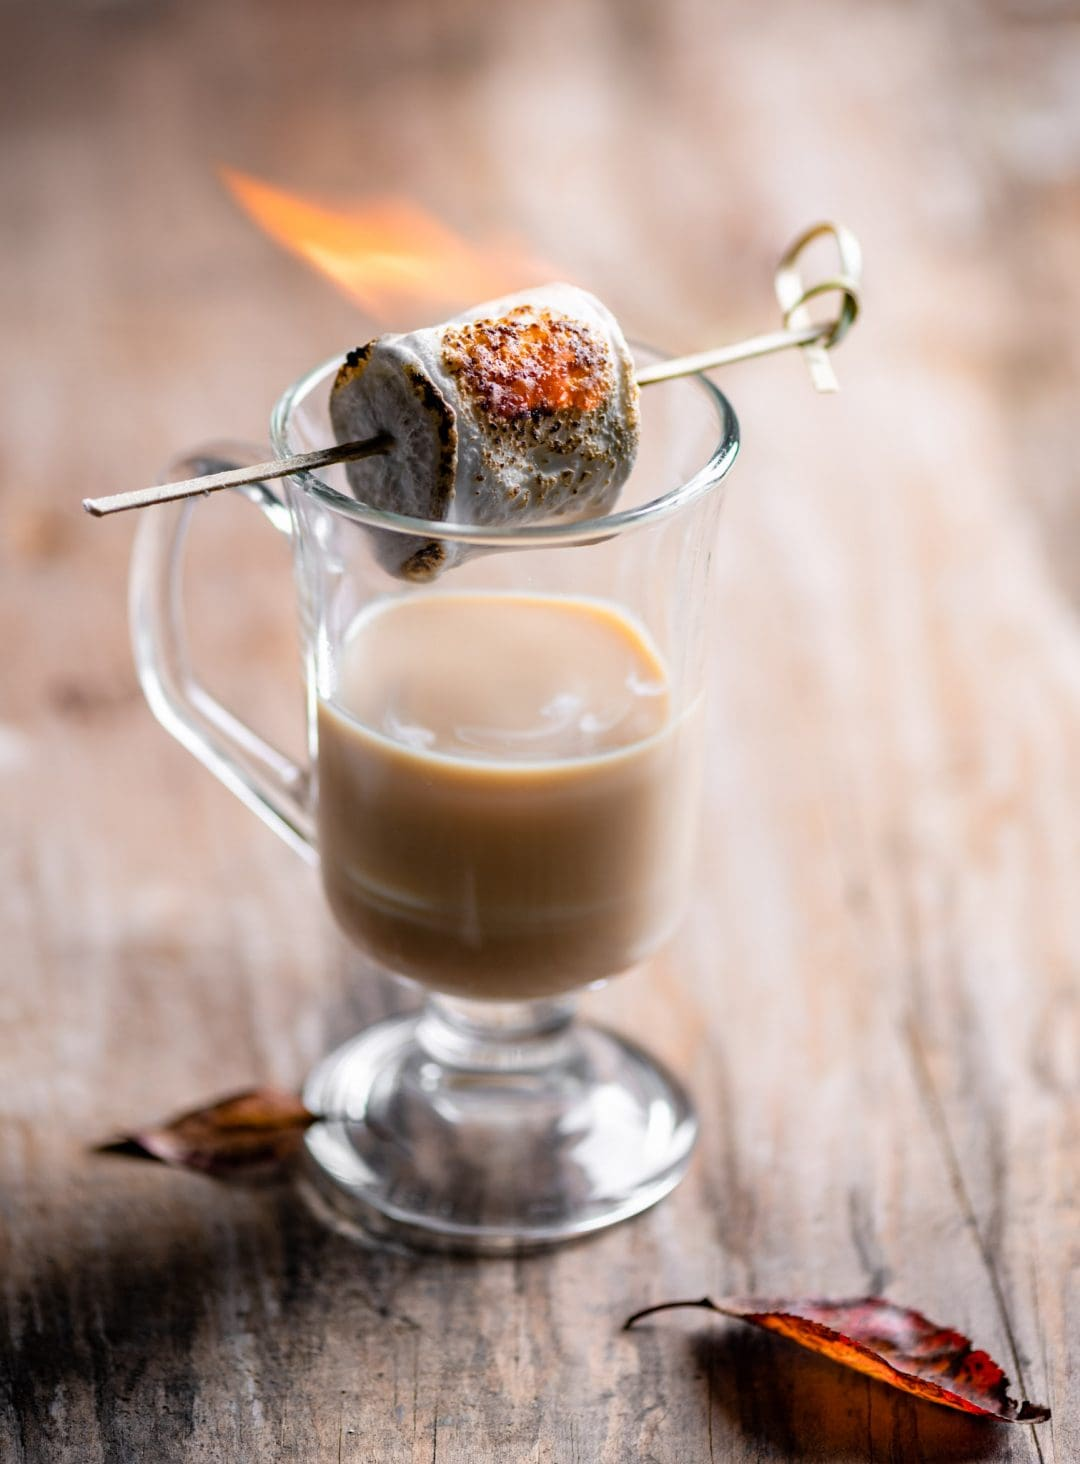 Rum cocktail with a flaming marshmallow on top.